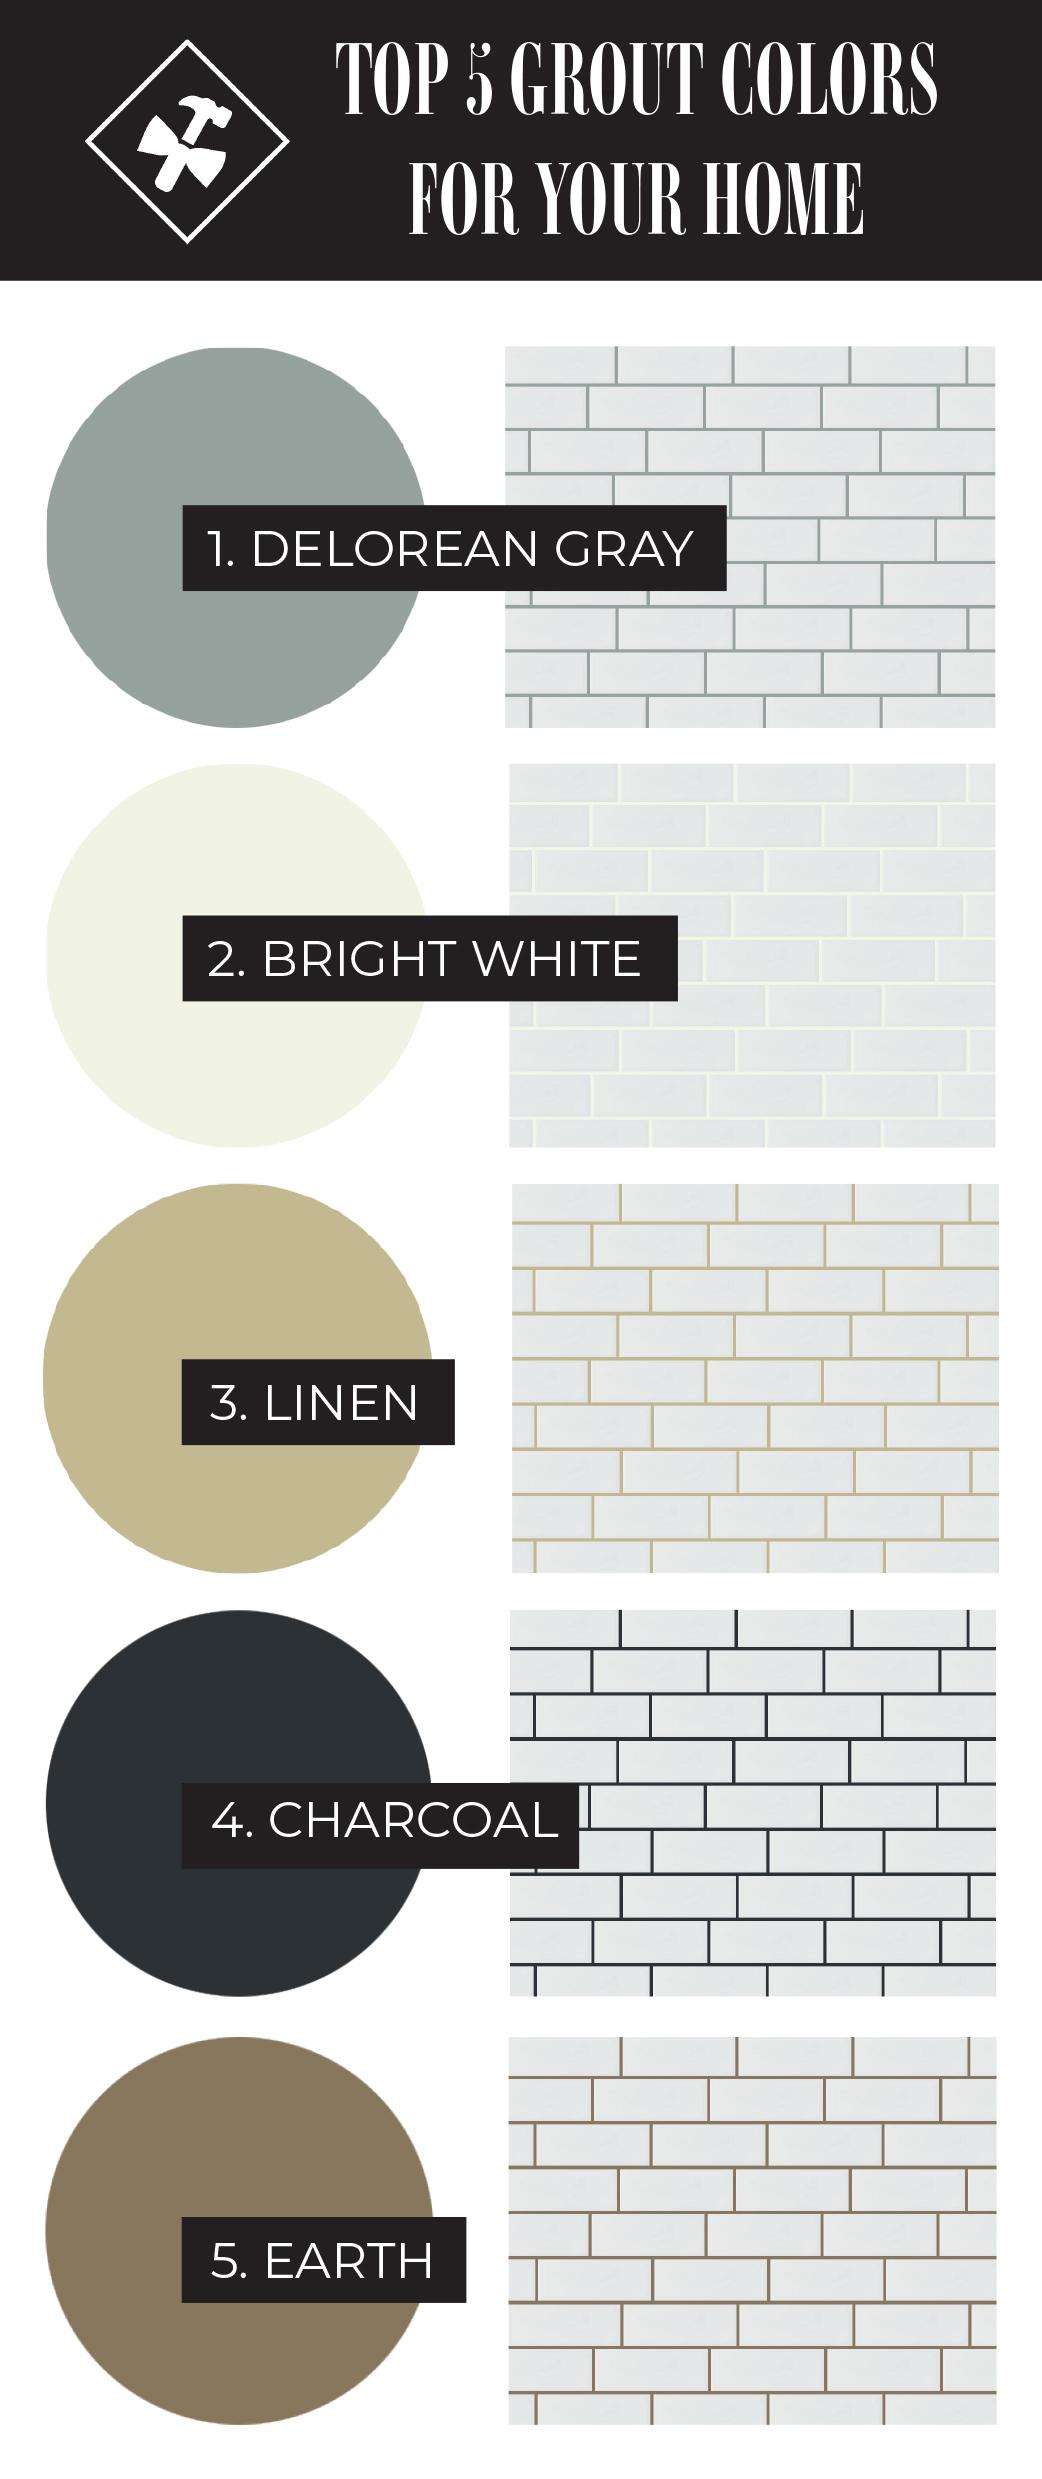 Top 5 Grout Colors For Your Home | construction2style